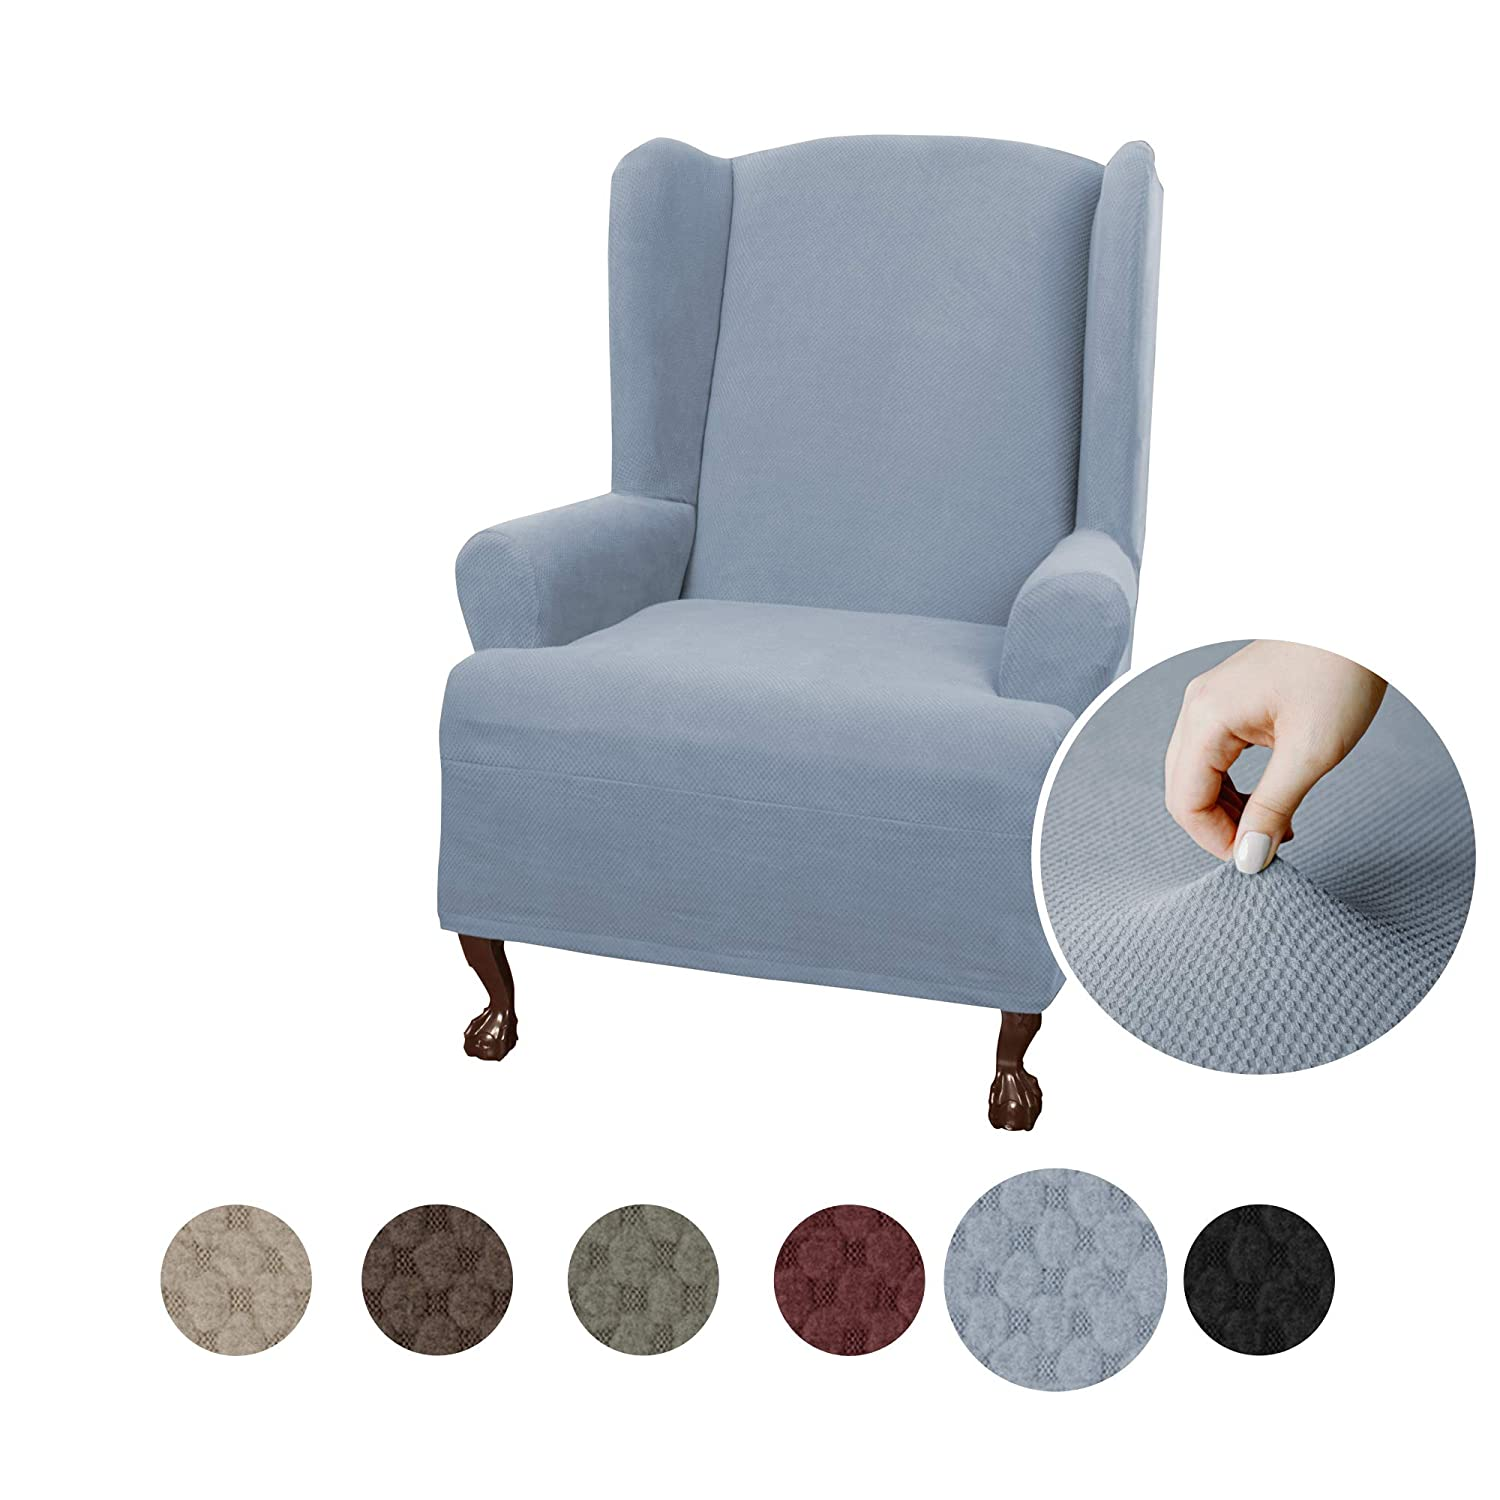 MAYTEX Pixel Ultra Soft Stretch Wing Back Arm Chair Furniture Cover Slipcover, Steel Blue